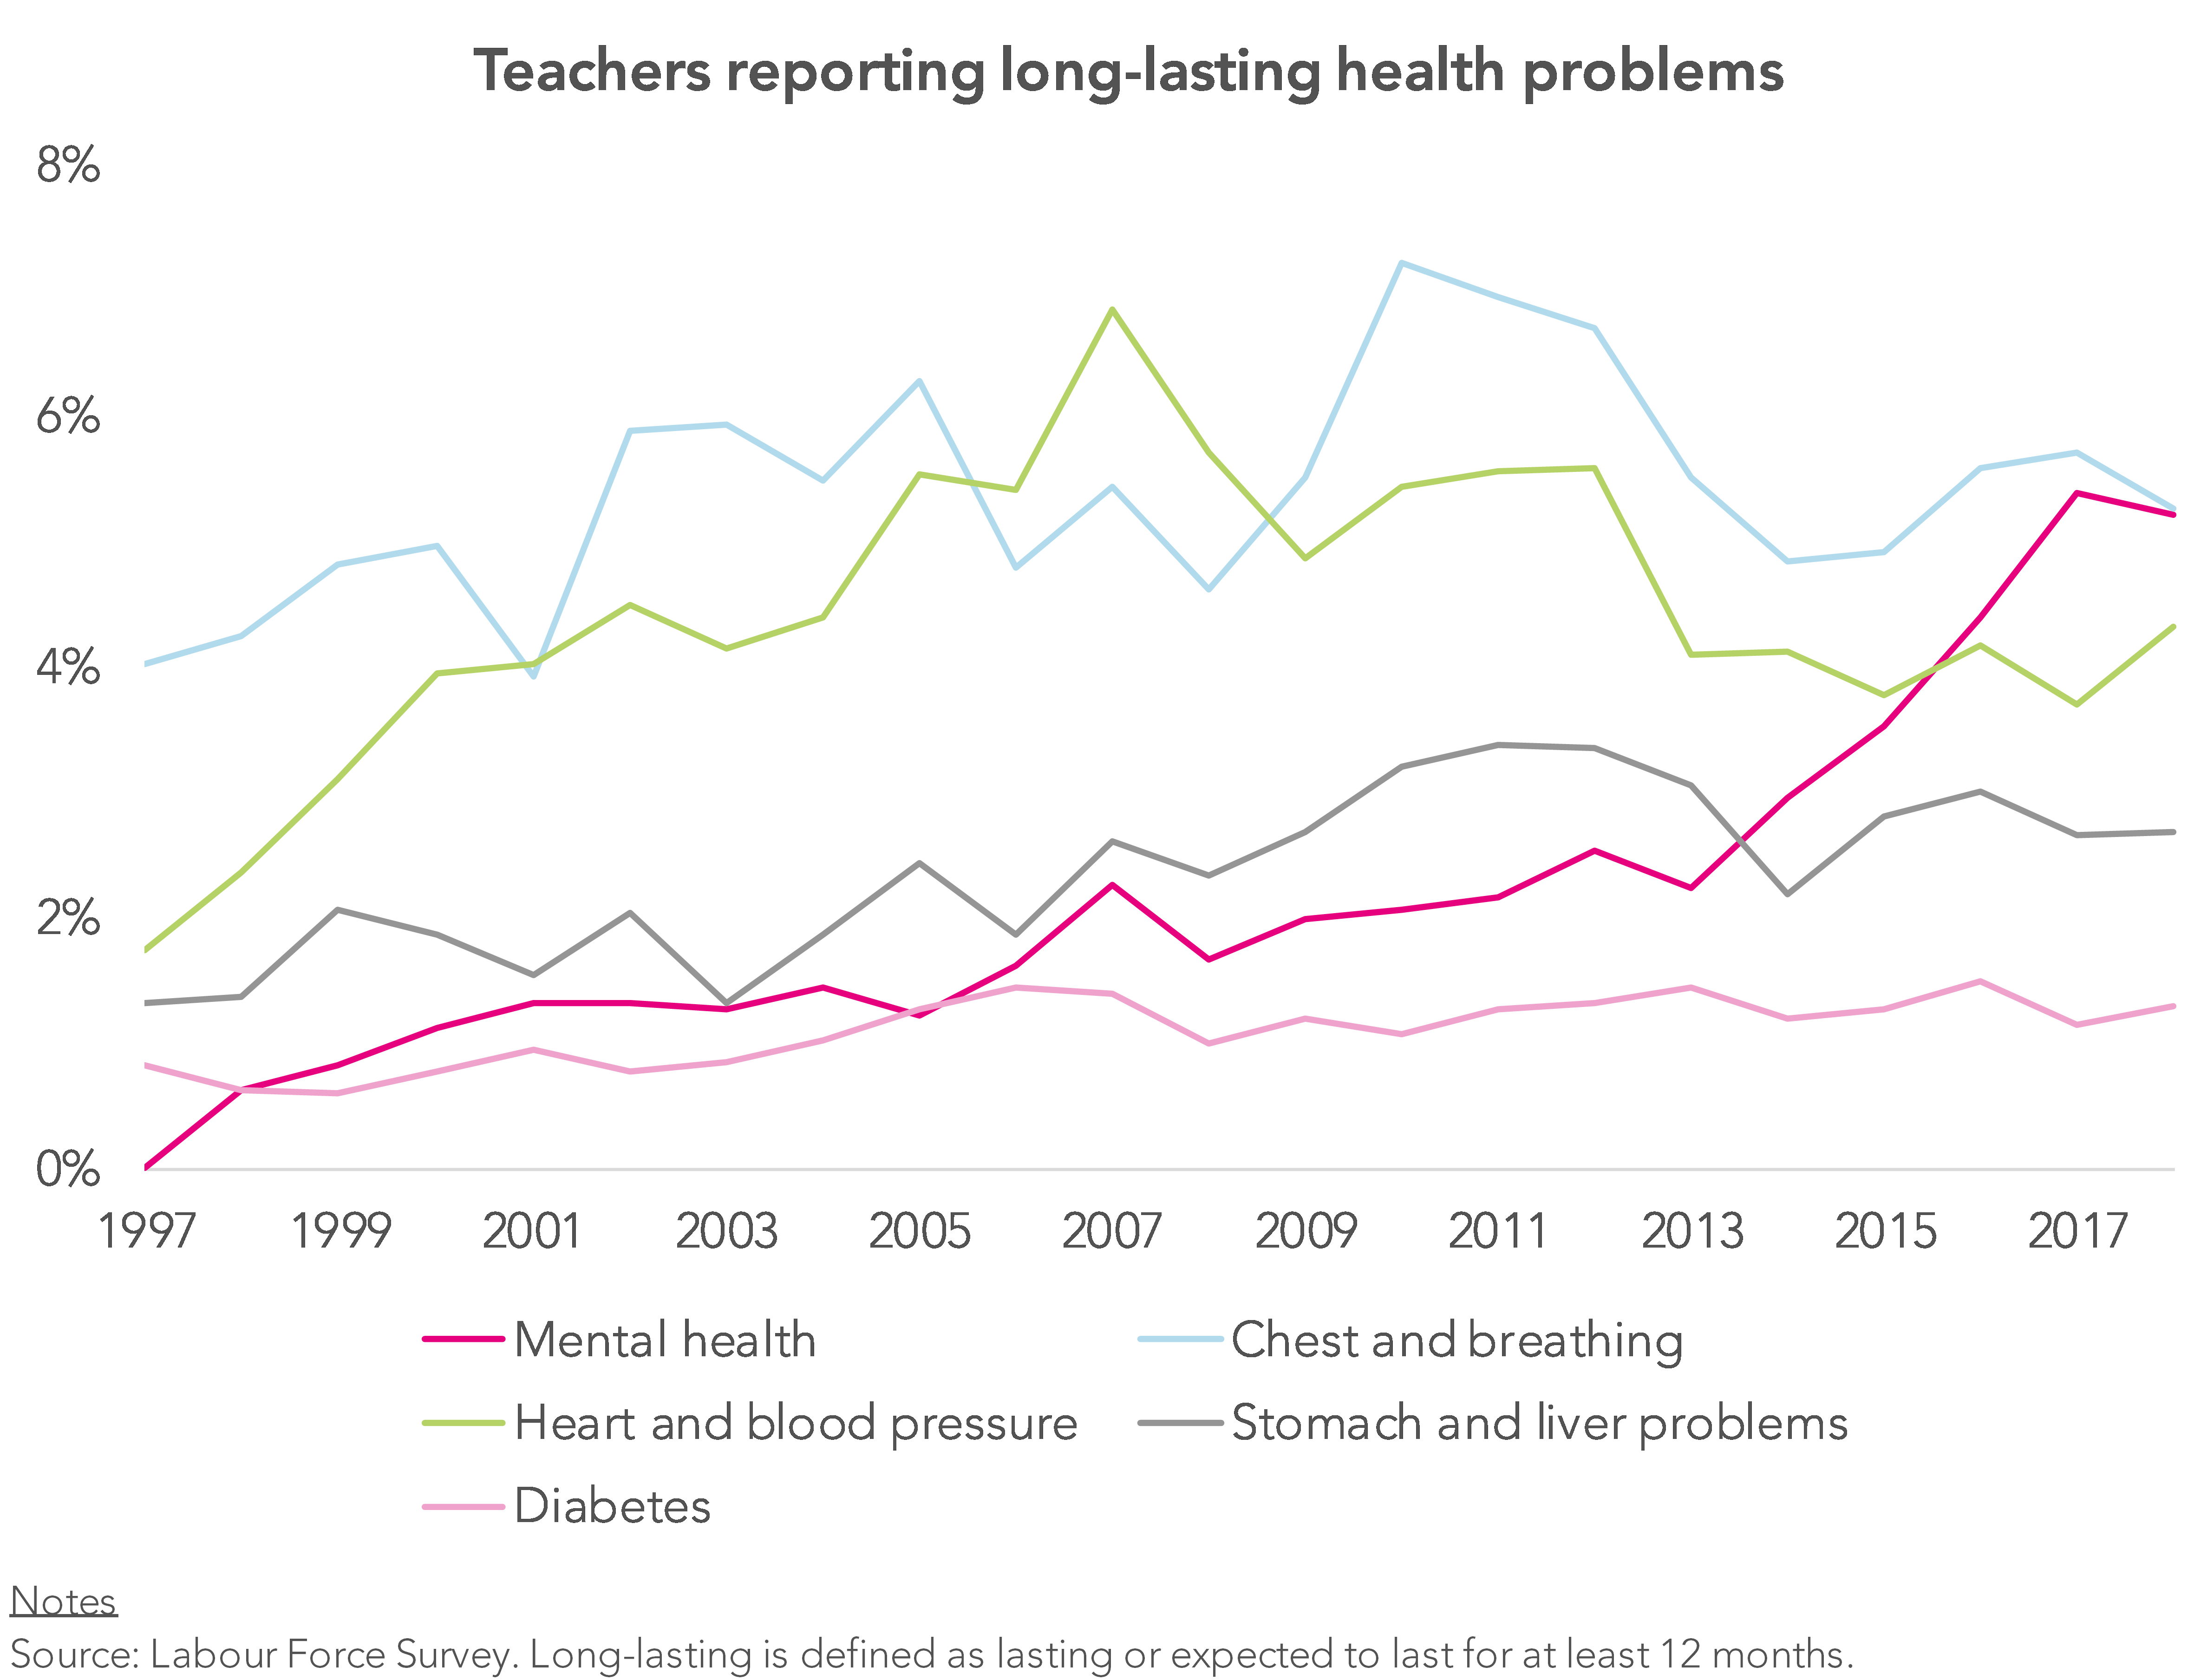 Are mental health problems among teachers on the rise? - FFT Education  Datalab